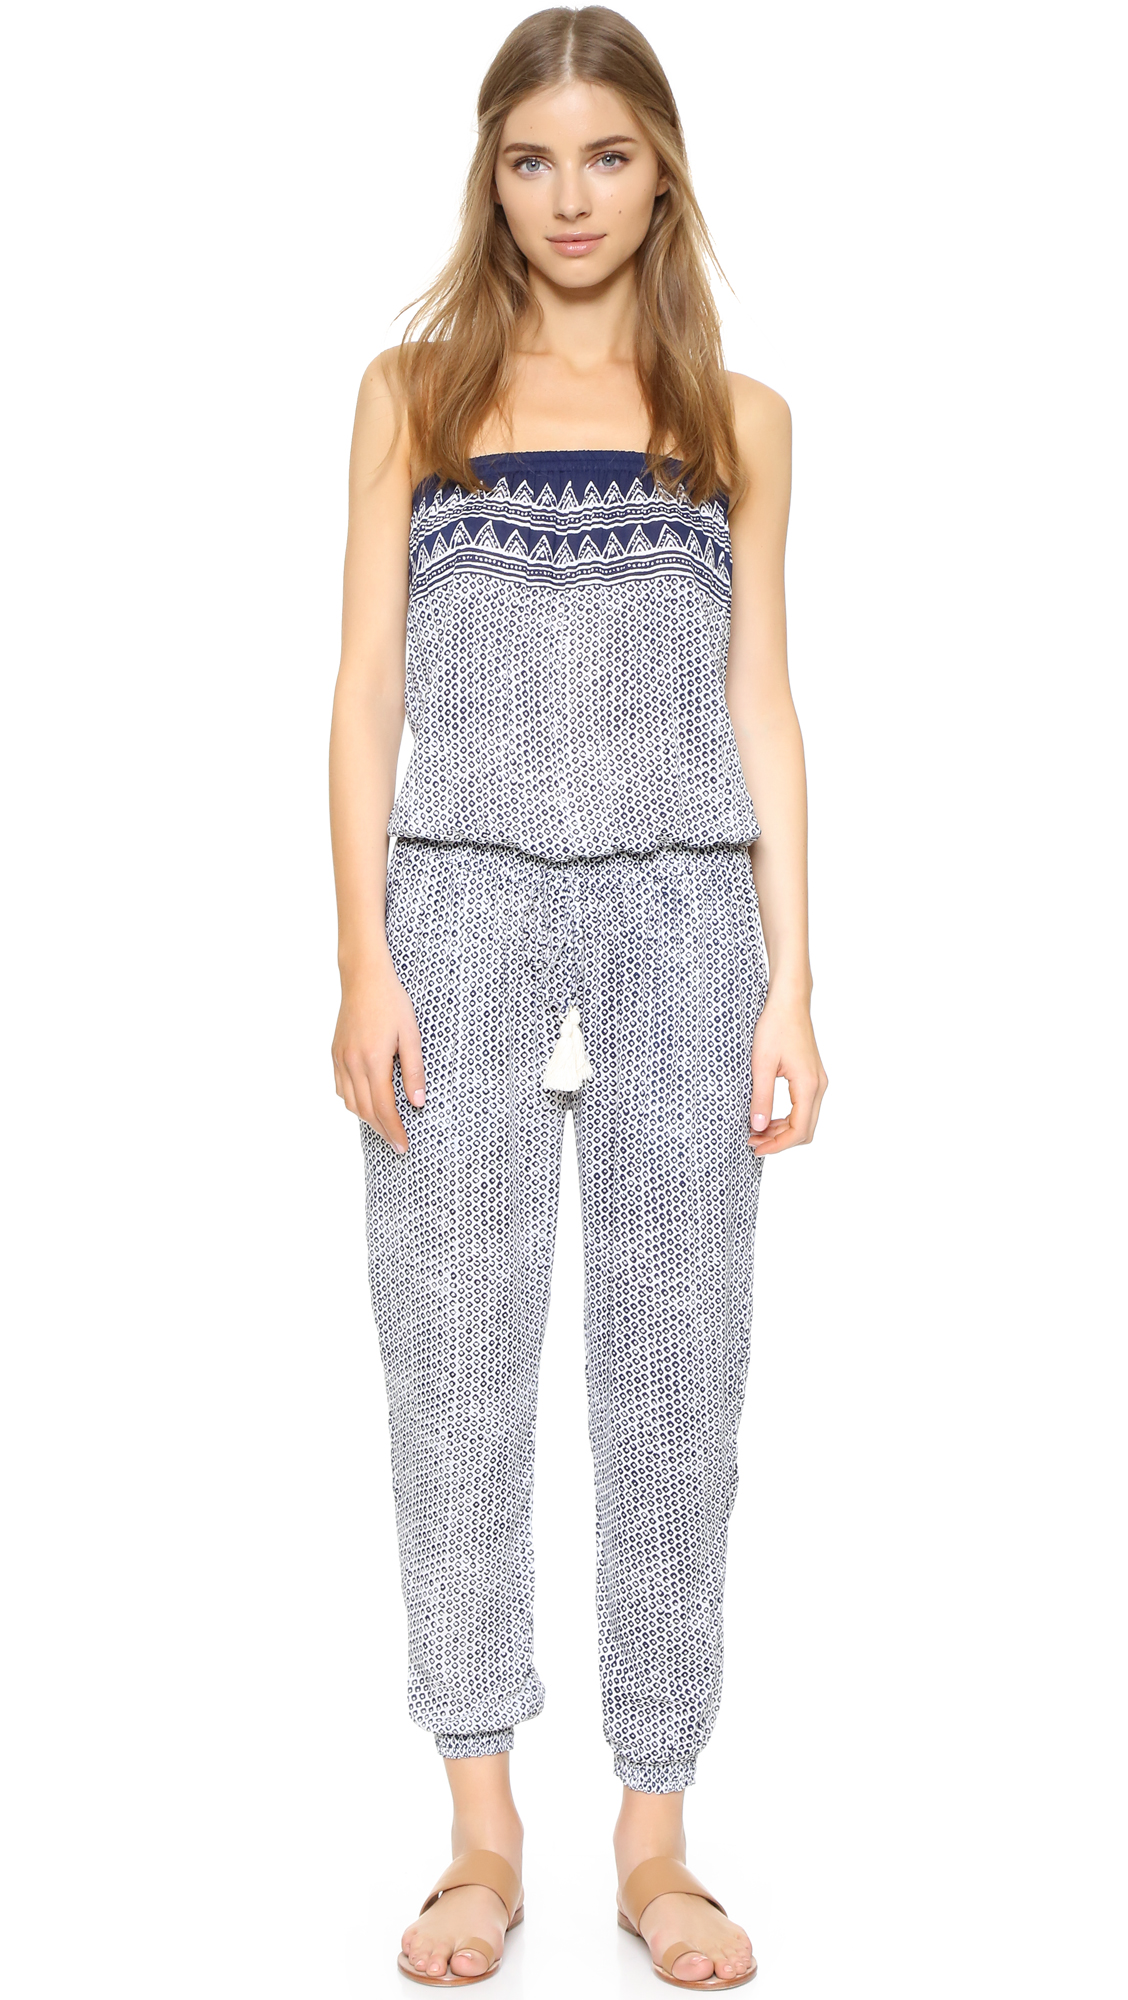 coolchange Brooke Jumpsuit - Indigo/White